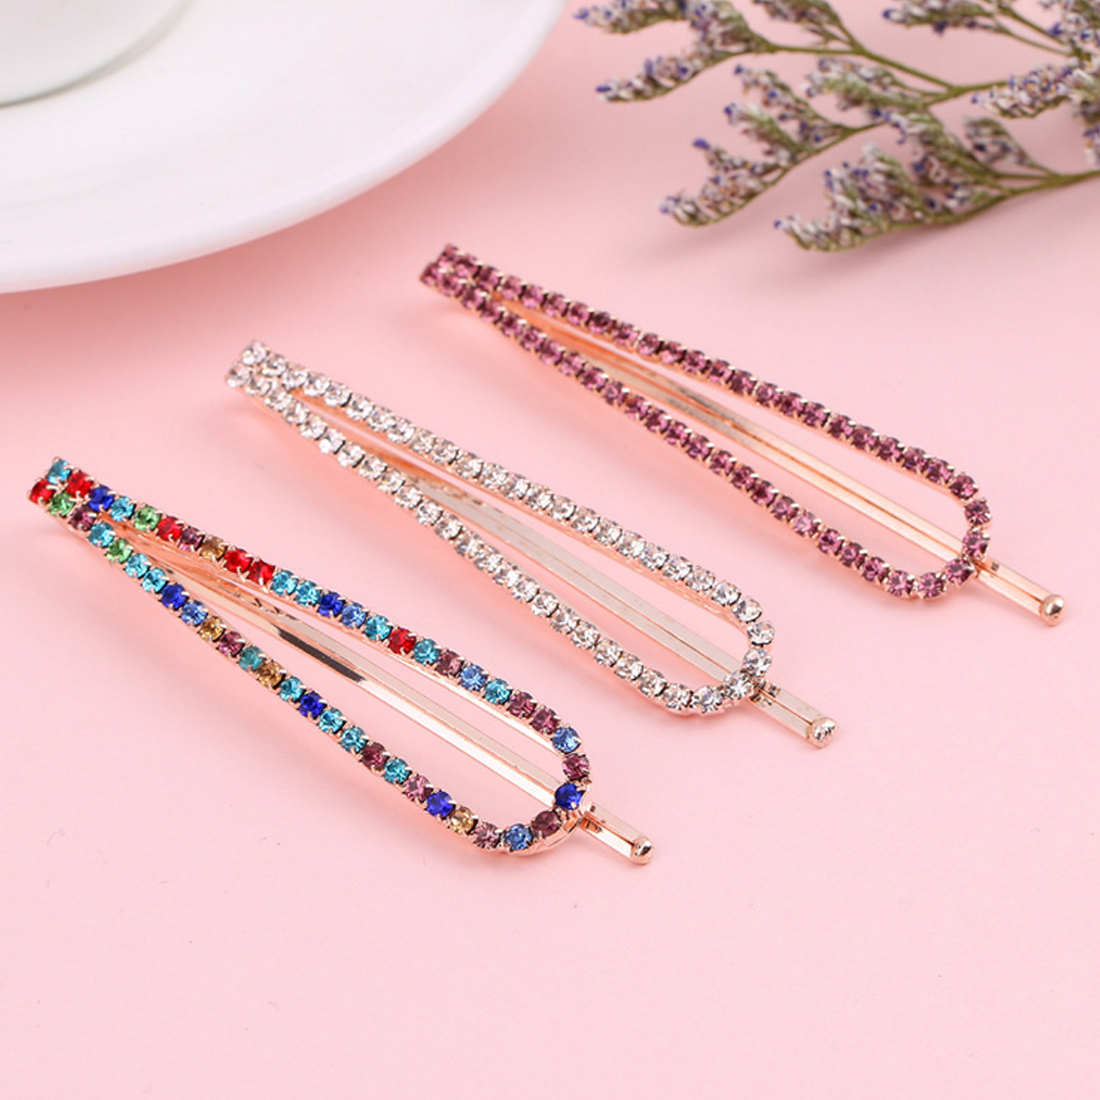 Popular High-end hair accessories headwear U-shaped clipcrystal rhinestone hairpin word clip holiday gift female wild jewelry